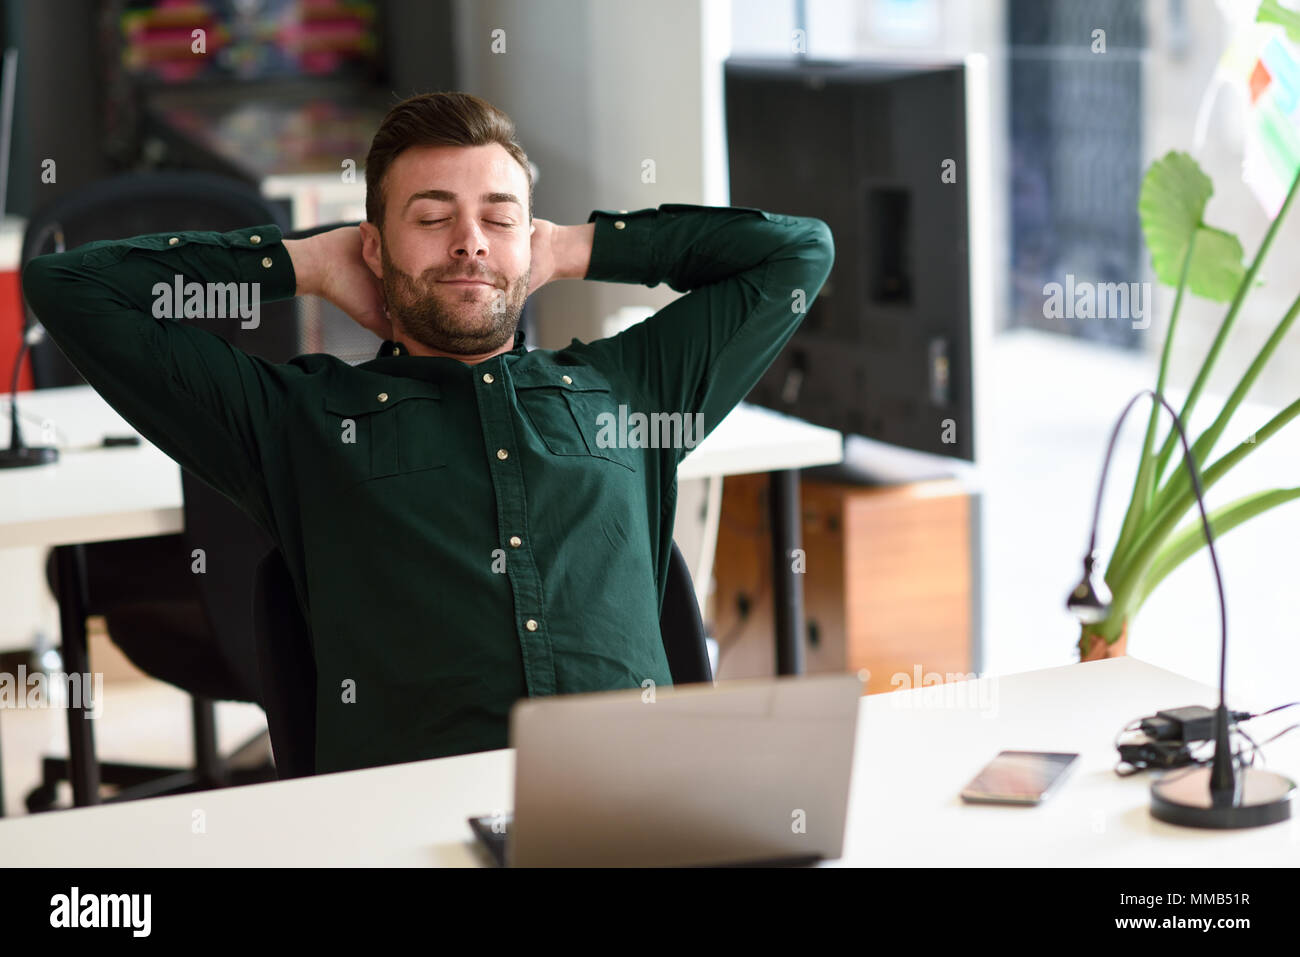 Young man studying with laptop computer on white desk. Attractive guy with beard wearing casual clothes taking a break. - Stock Image